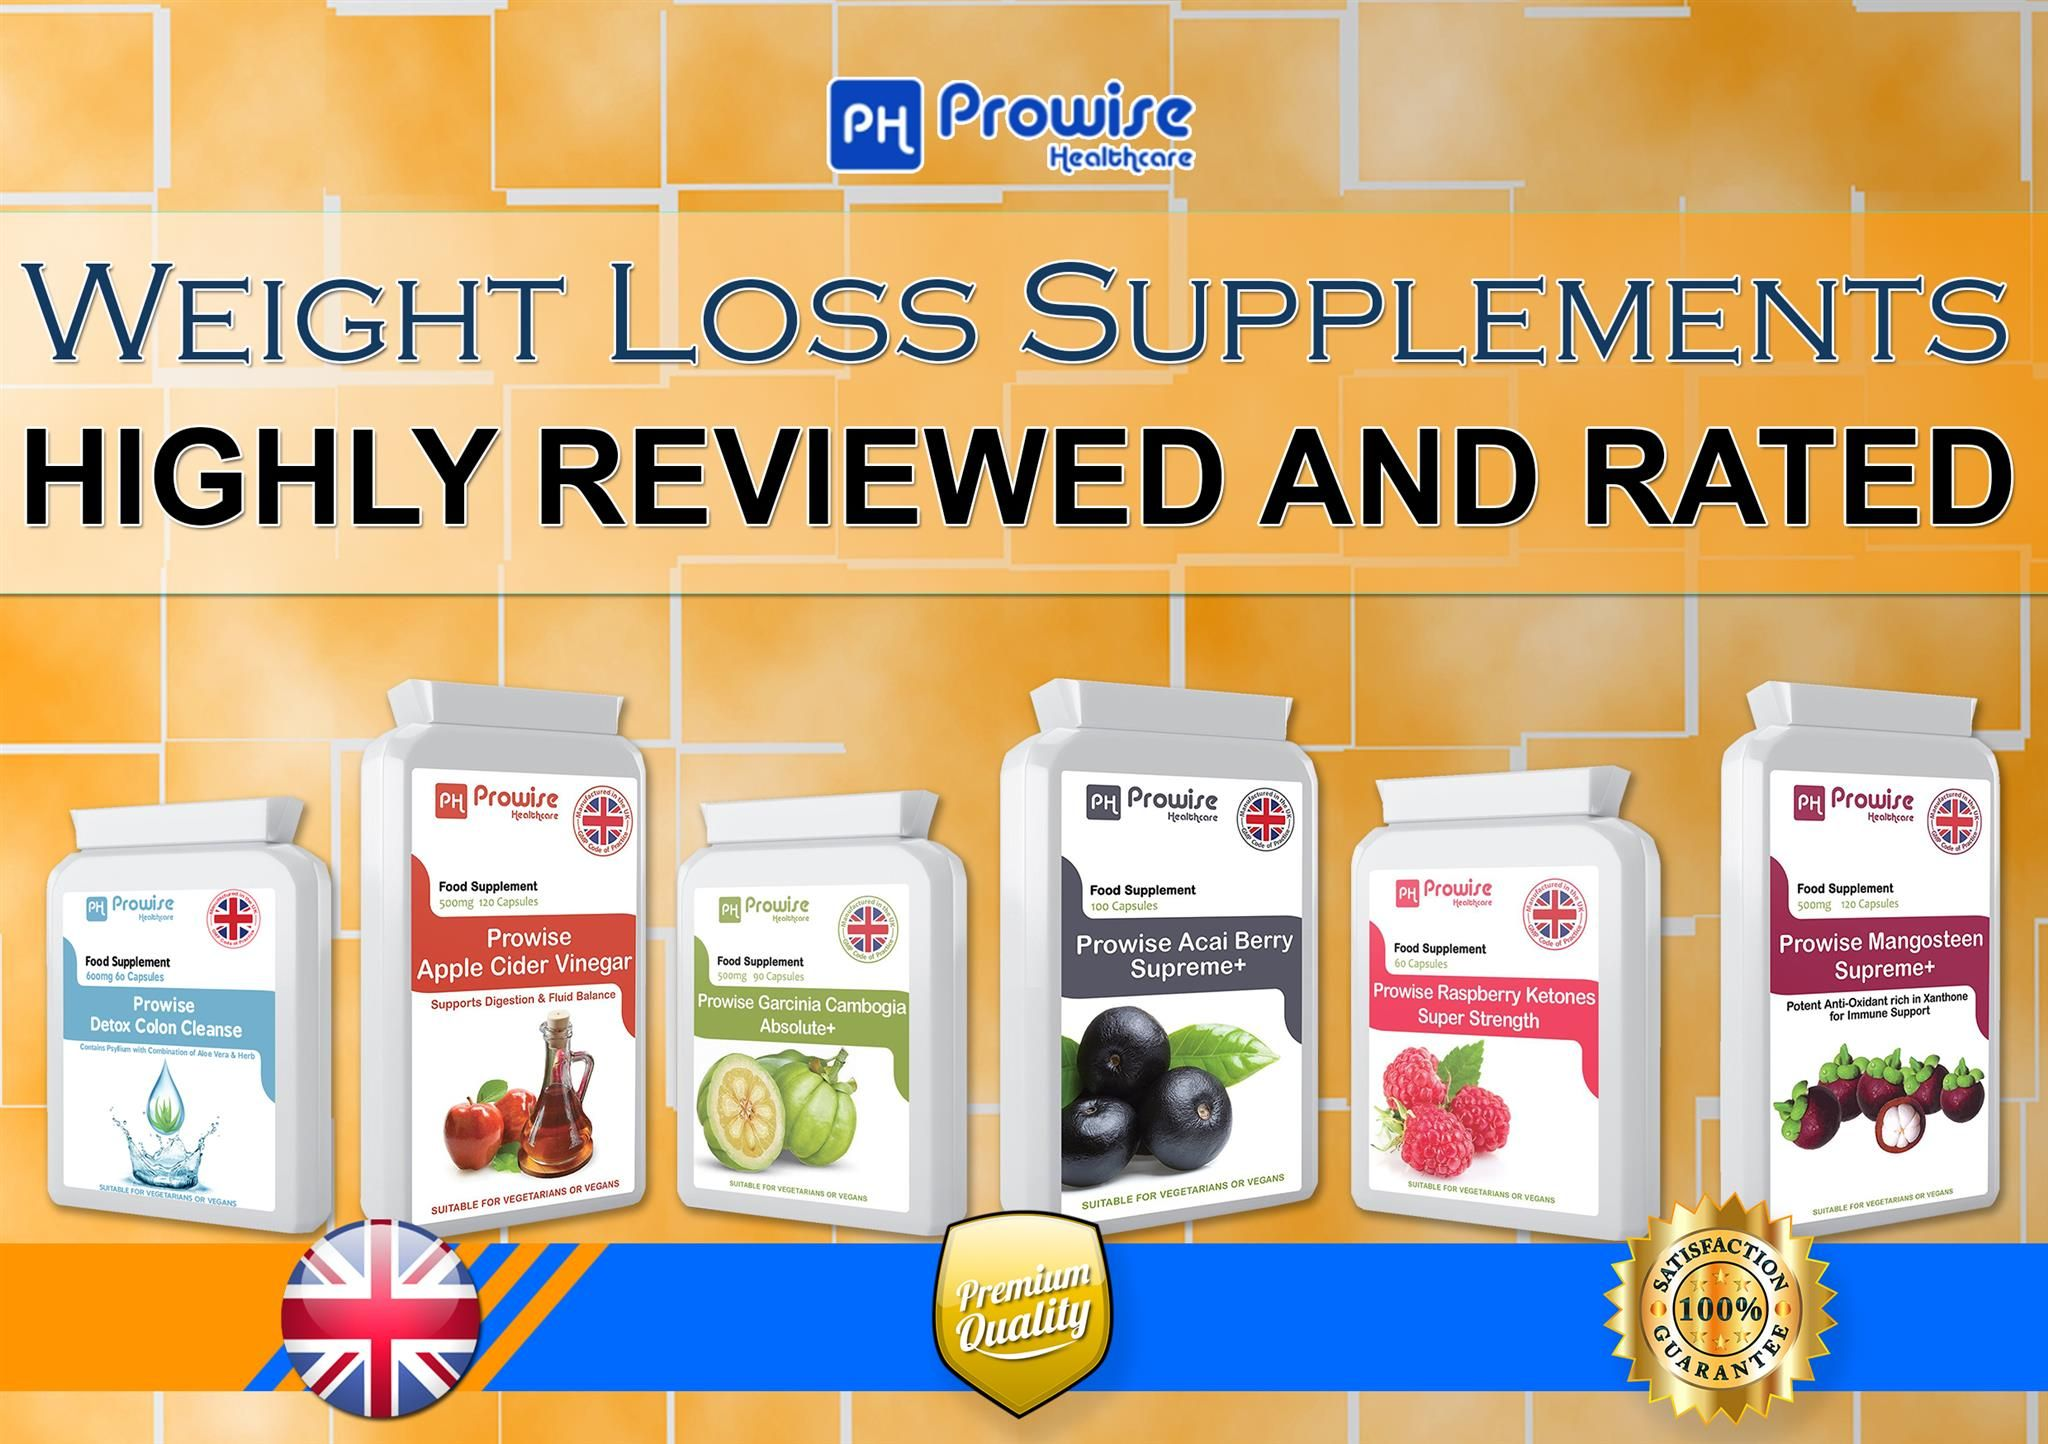 Prowise Weightloss Supplements Medically Proven Weight Loss